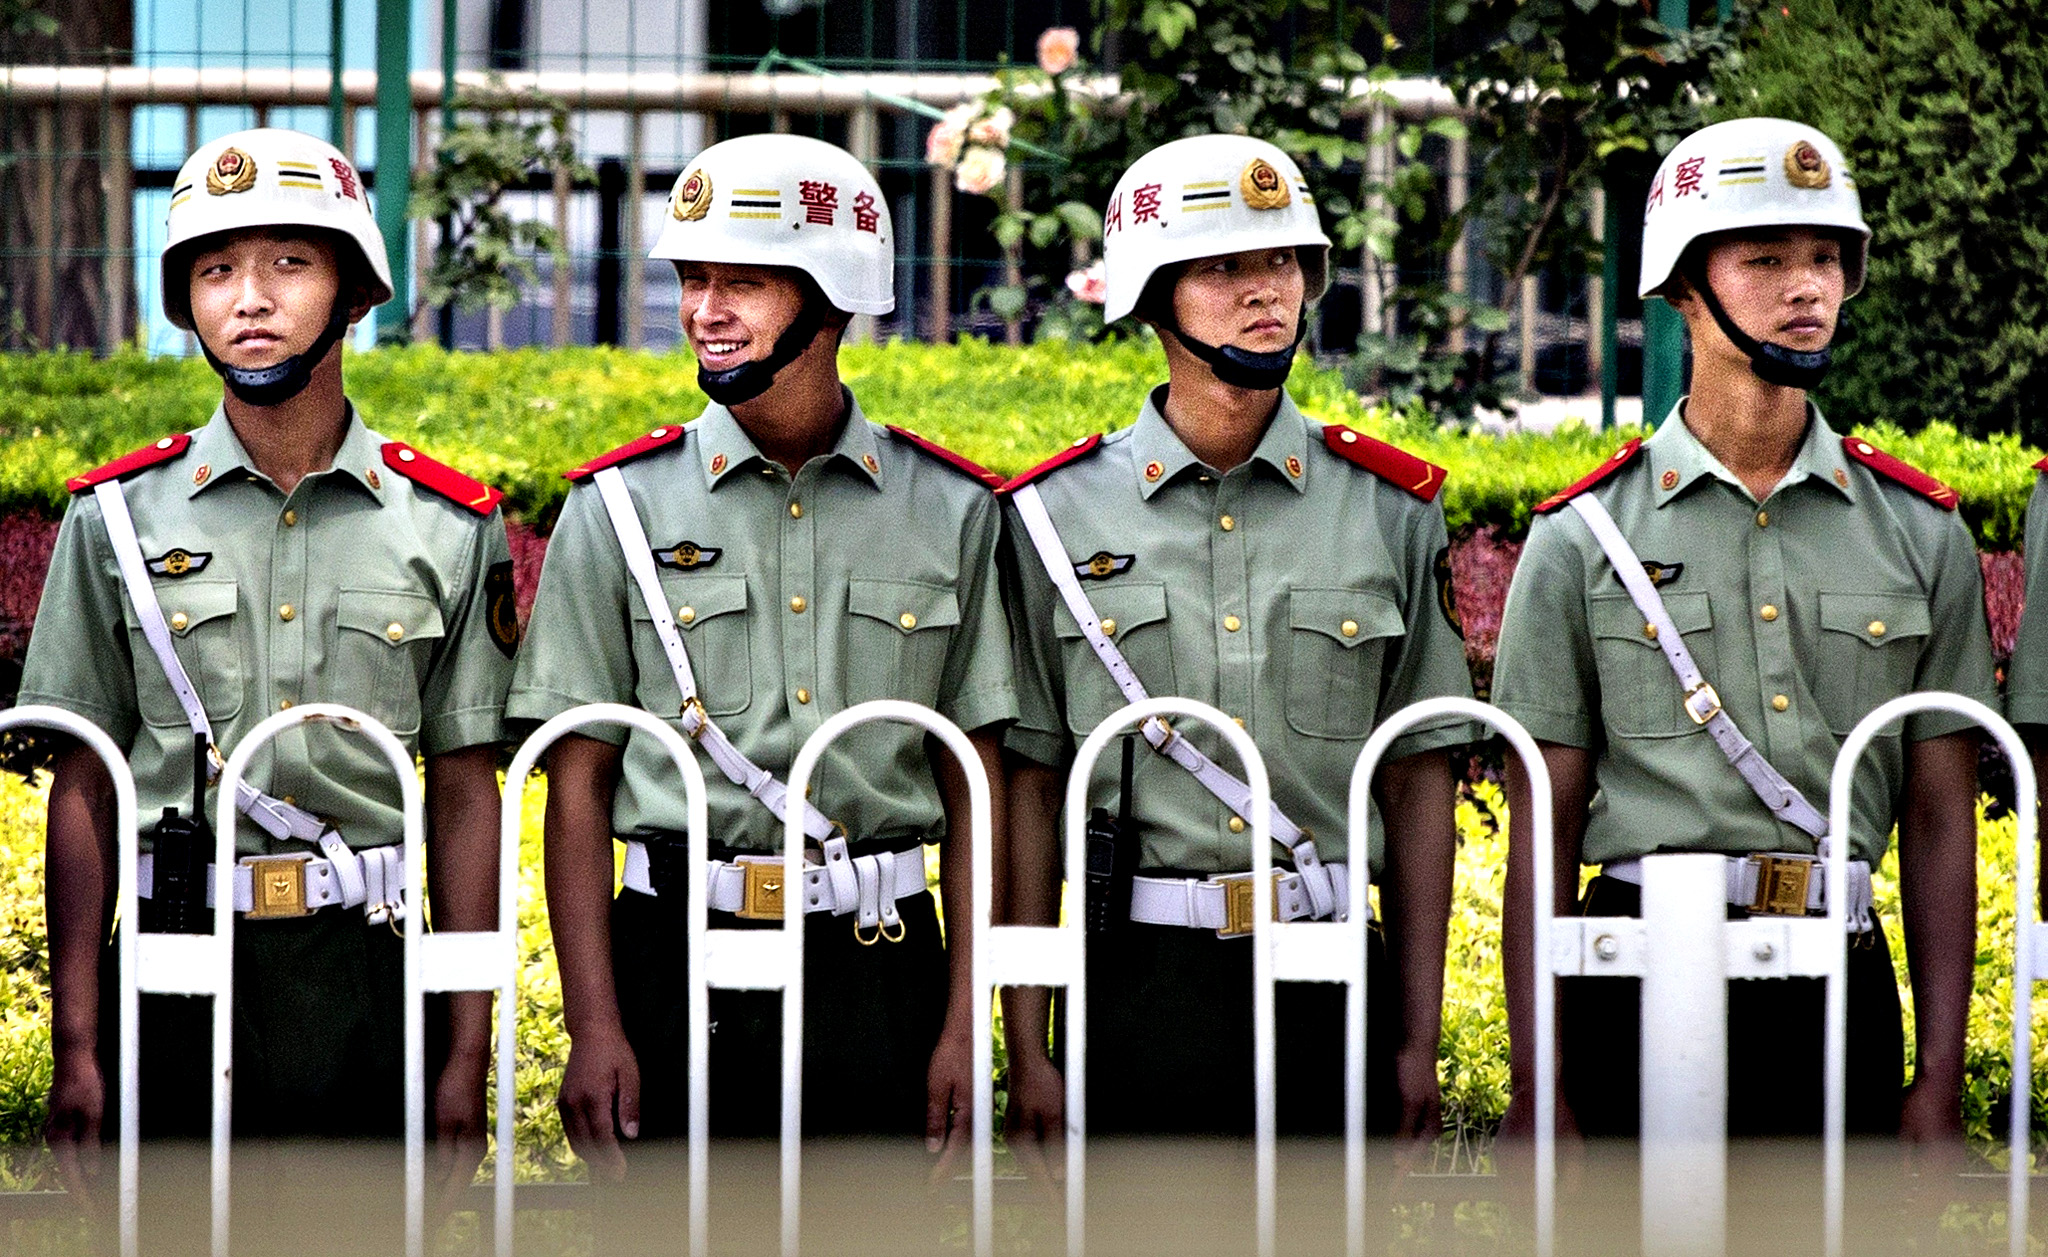 Tiananmem Square Anniversary...BEIJING, CHINA - JUNE 03:  Chinese Paramilitary police stand guard near Tiananmen Square on June 4, 2014 in Beijing, China. Twenty-five years ago on June 4, 1989 Chinese troops cracked down on pro-democracy protesters and in the clashes that followed scores were killed and injured.